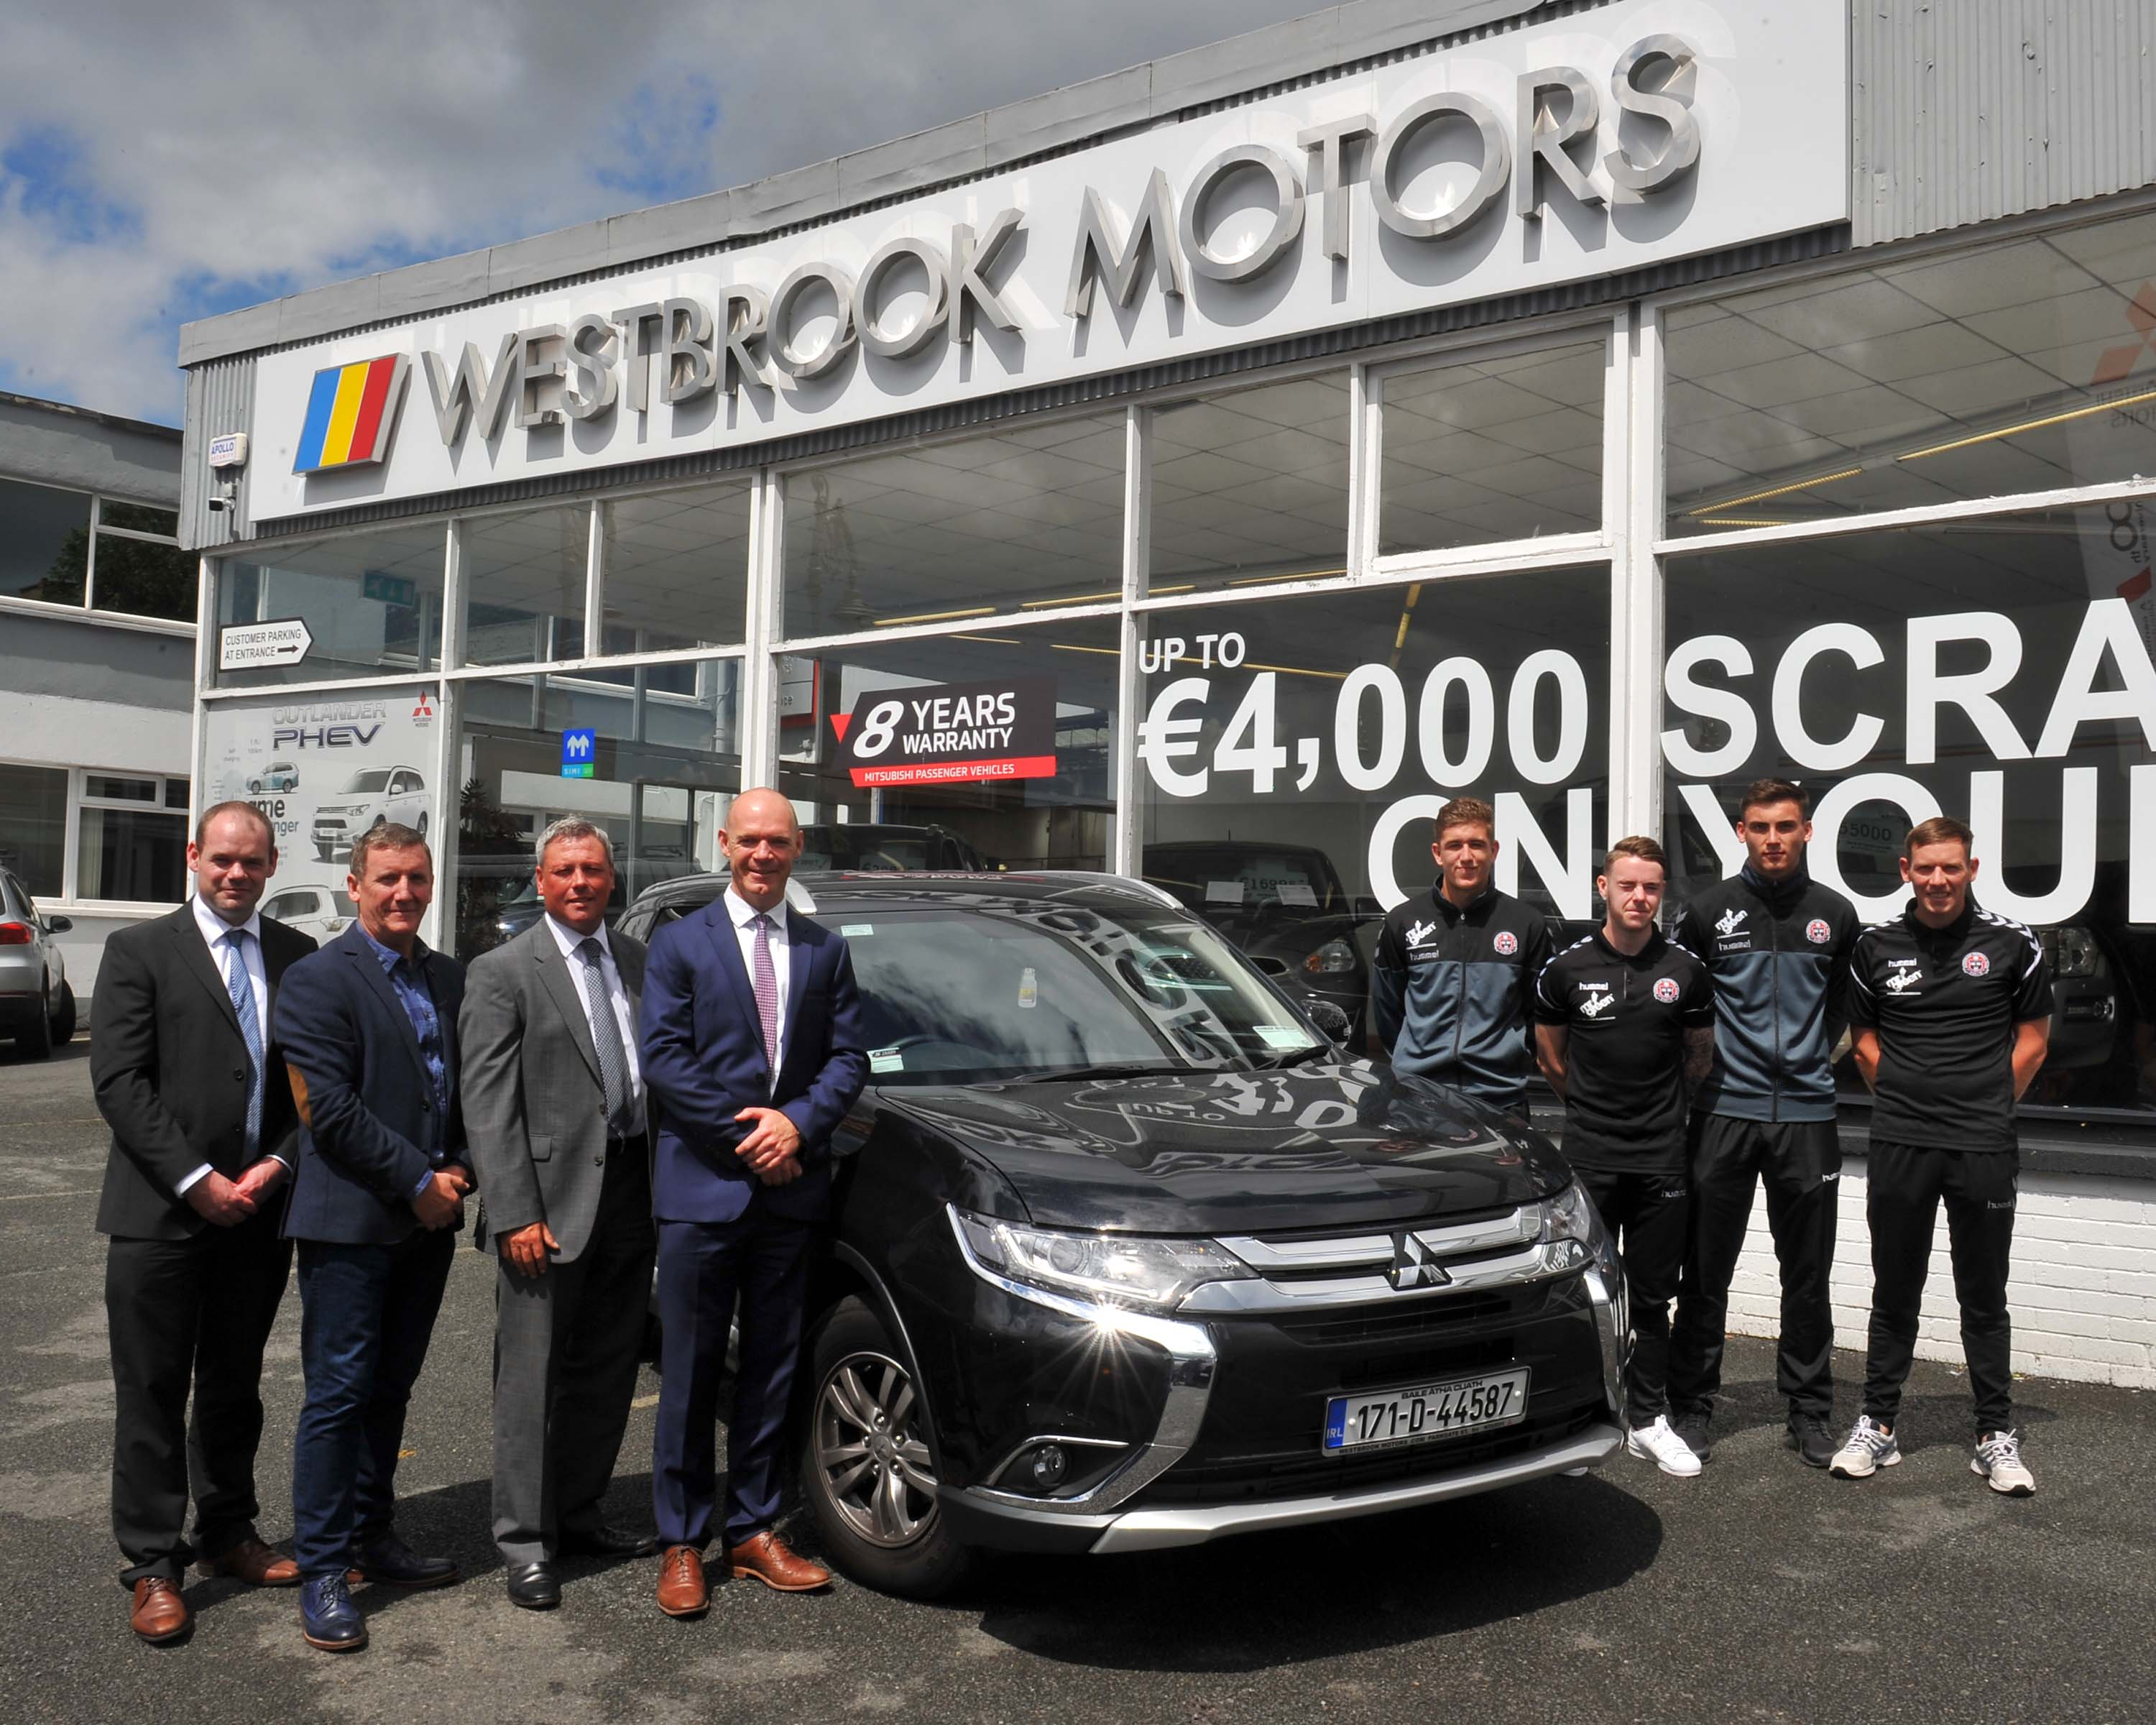 Westbrook Motors, the main Mitsubishi Dealer in Dublin City, has been officially unveiled as the new vehicle sponsor of Bohemian FC after penning an ...